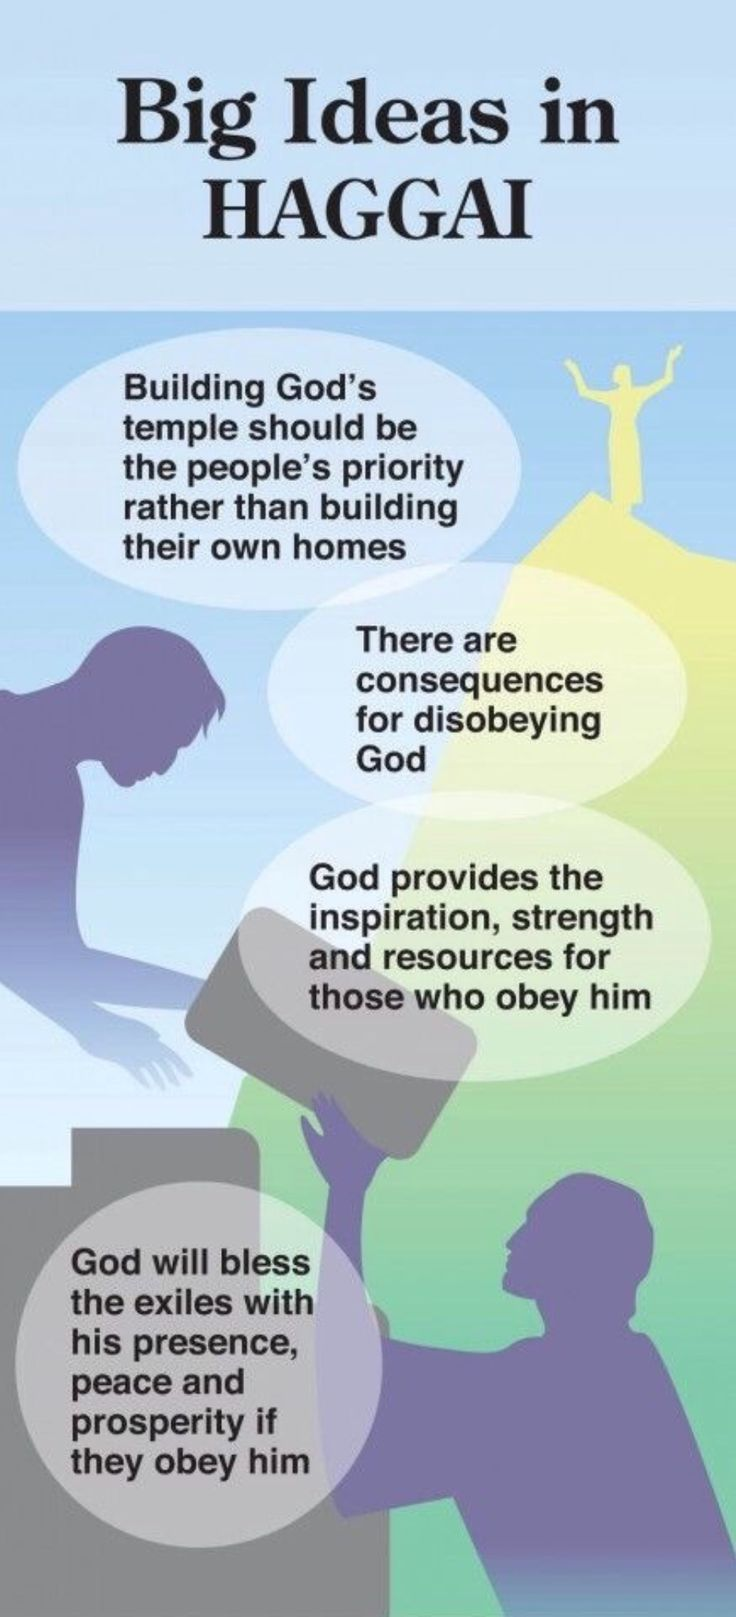 Big ideas in haggai online bible study bible facts